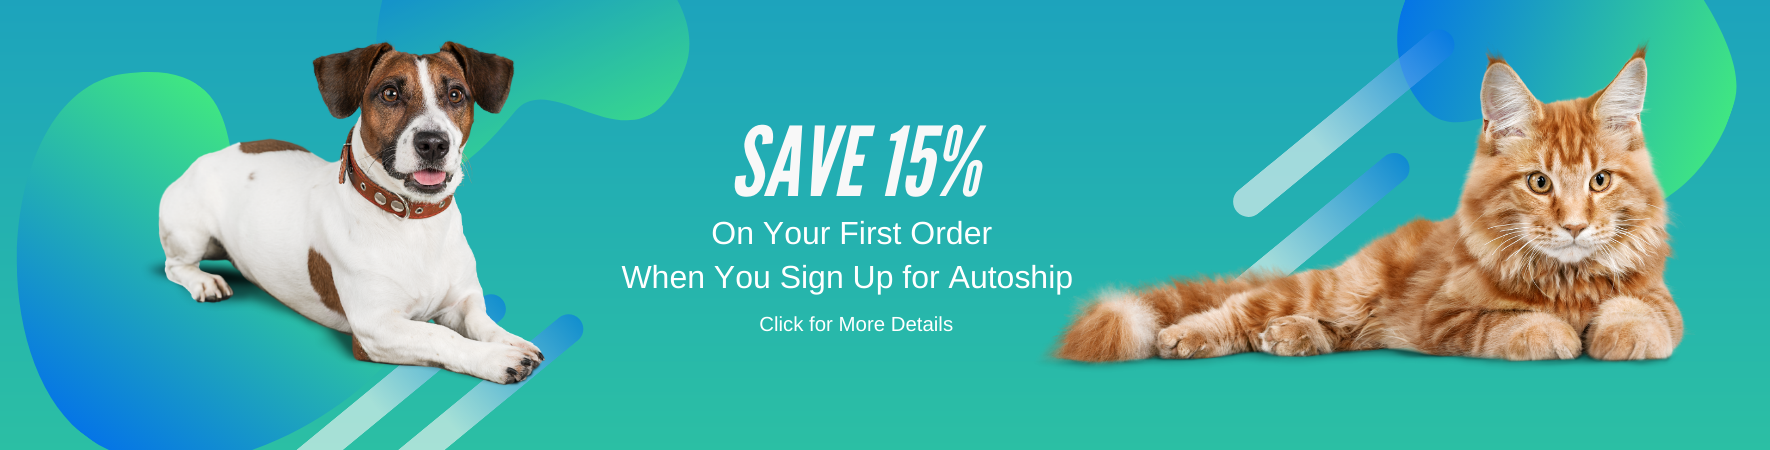 Save 15% when you sign up for AutoShip Automatic Shipping